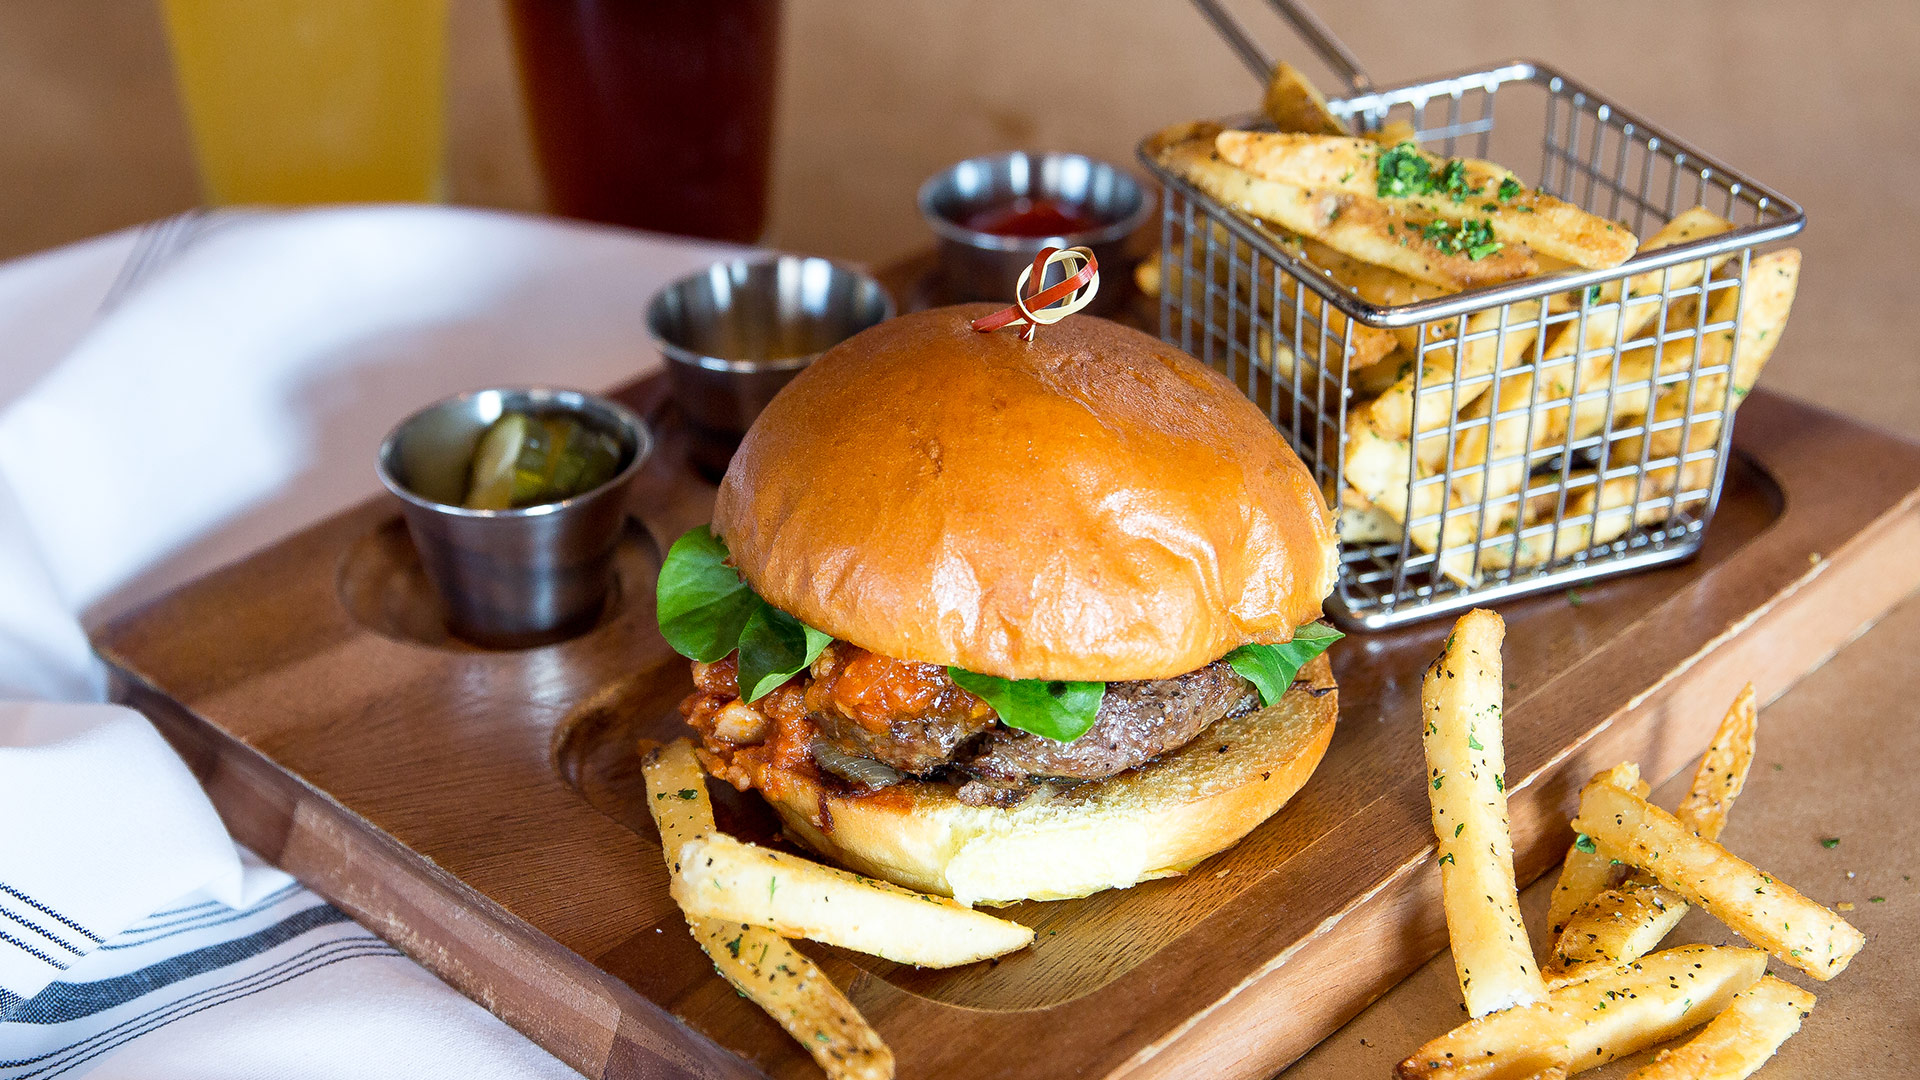 Burger and fries on wooden plate